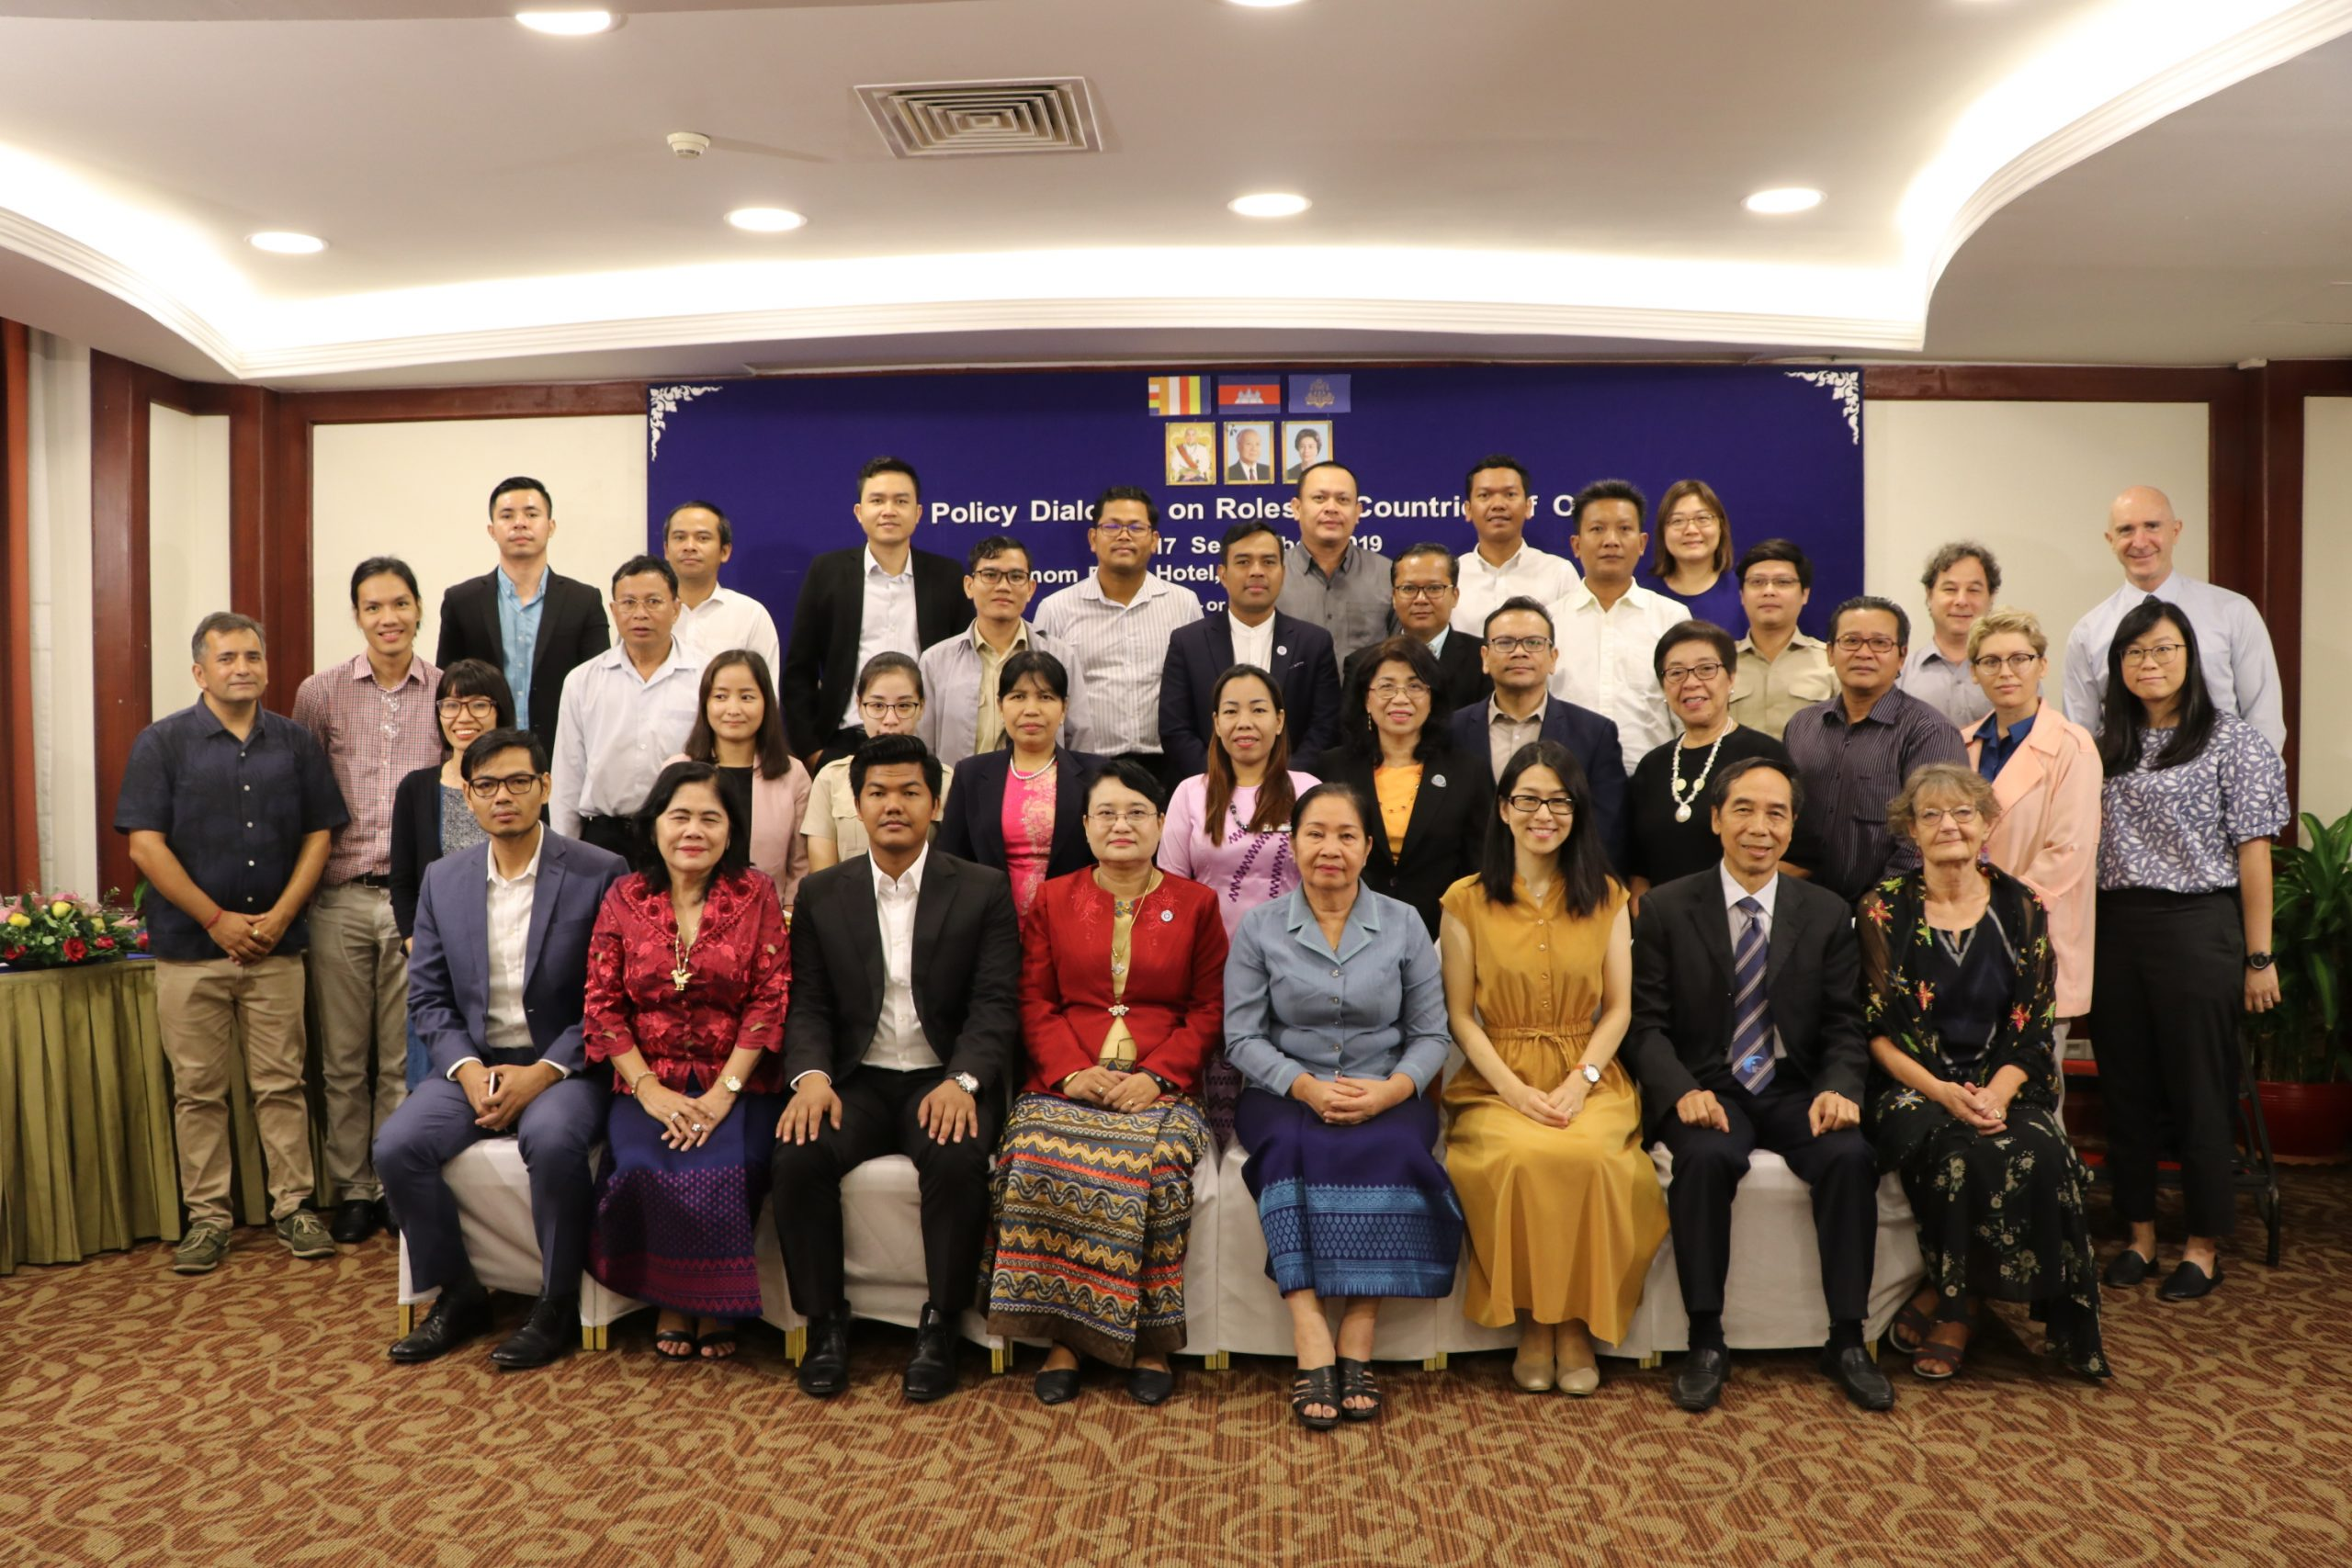 Second Policy Dialogue on Roles of Countries of Origin, September 2019, Phnom Penh, Cambodia